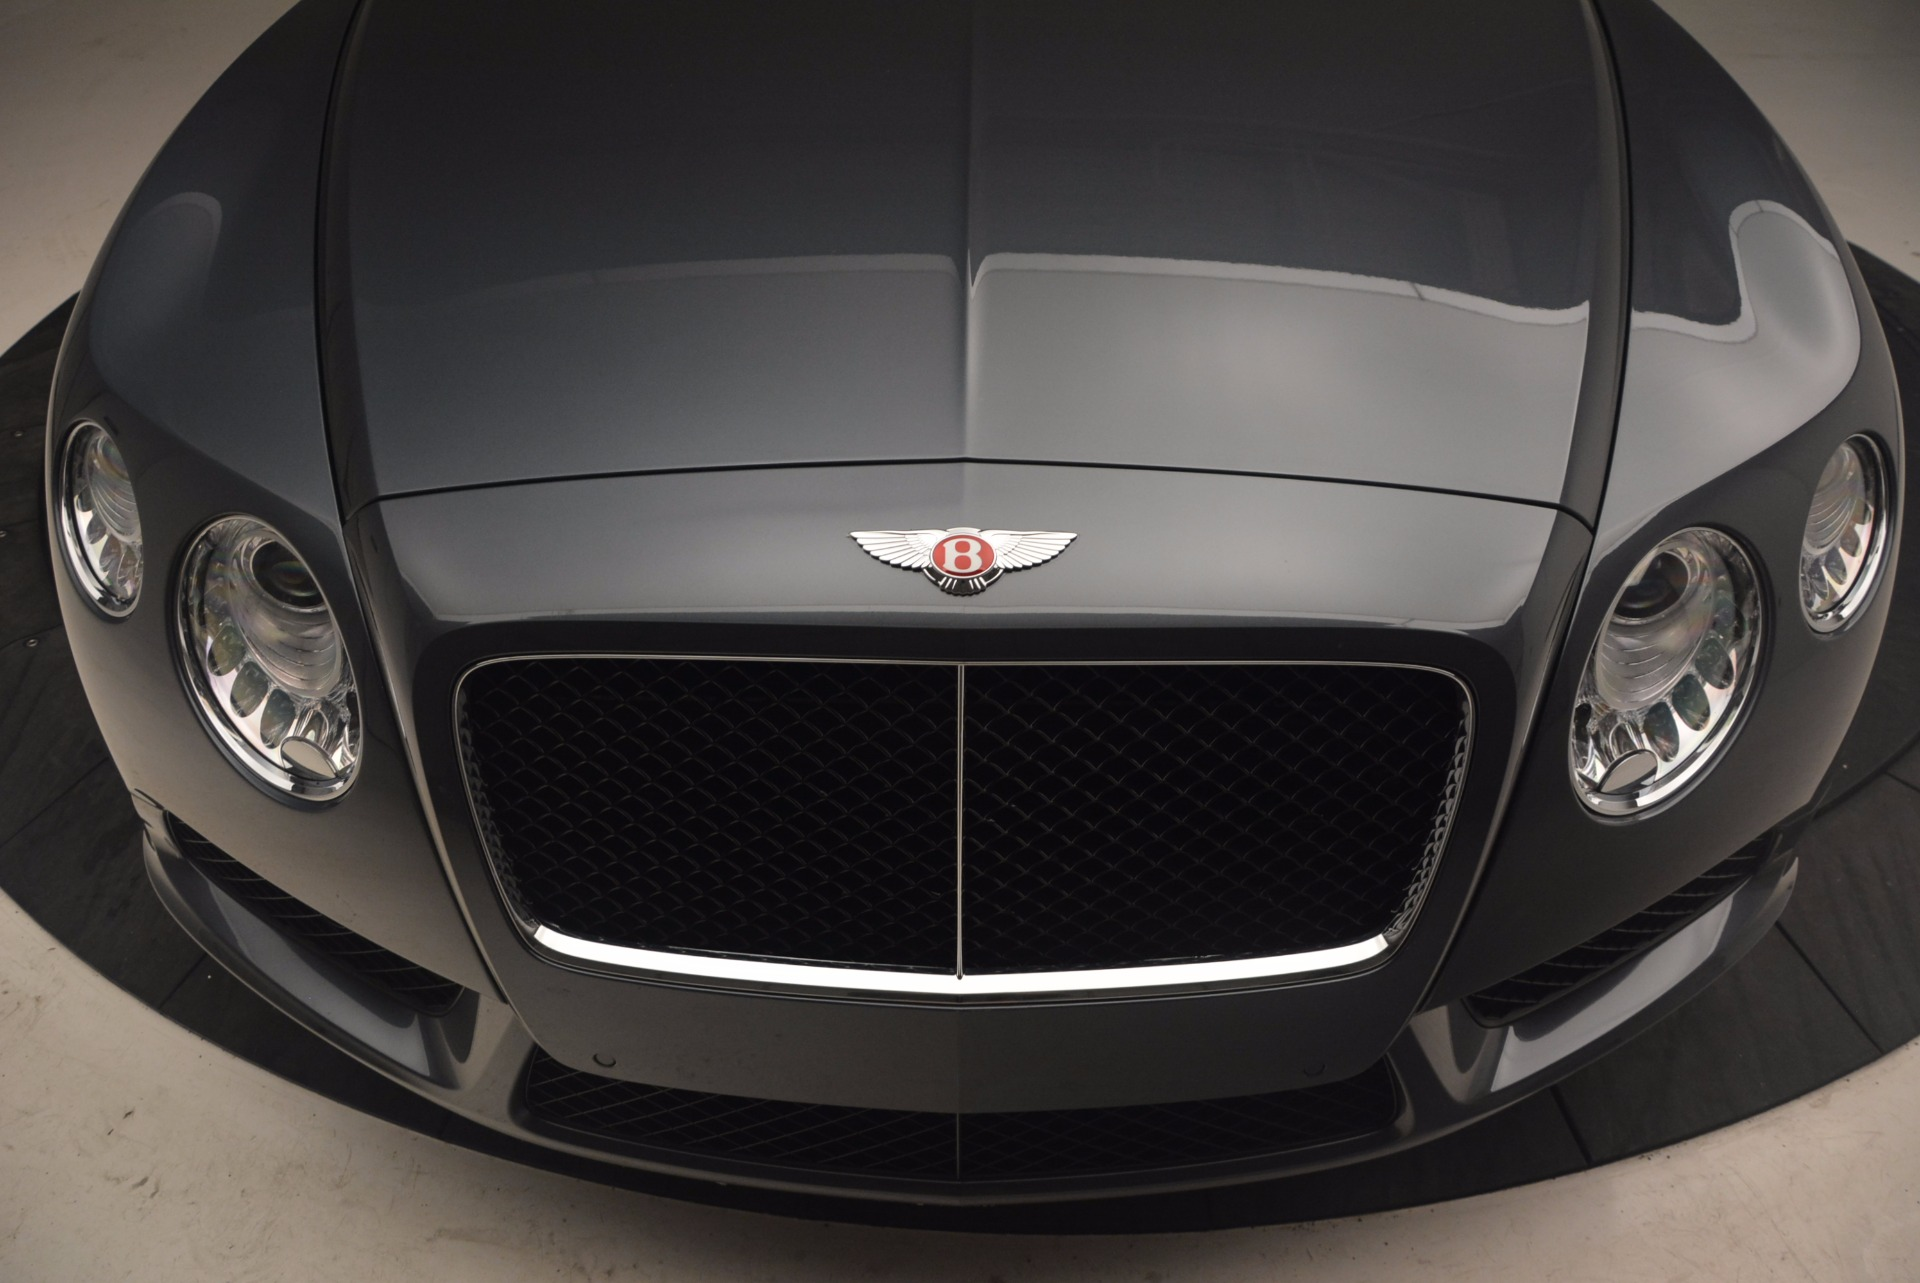 Used 2013 Bentley Continental GT V8 Le Mans Edition, 1 of 48 For Sale In Westport, CT 1288_p25